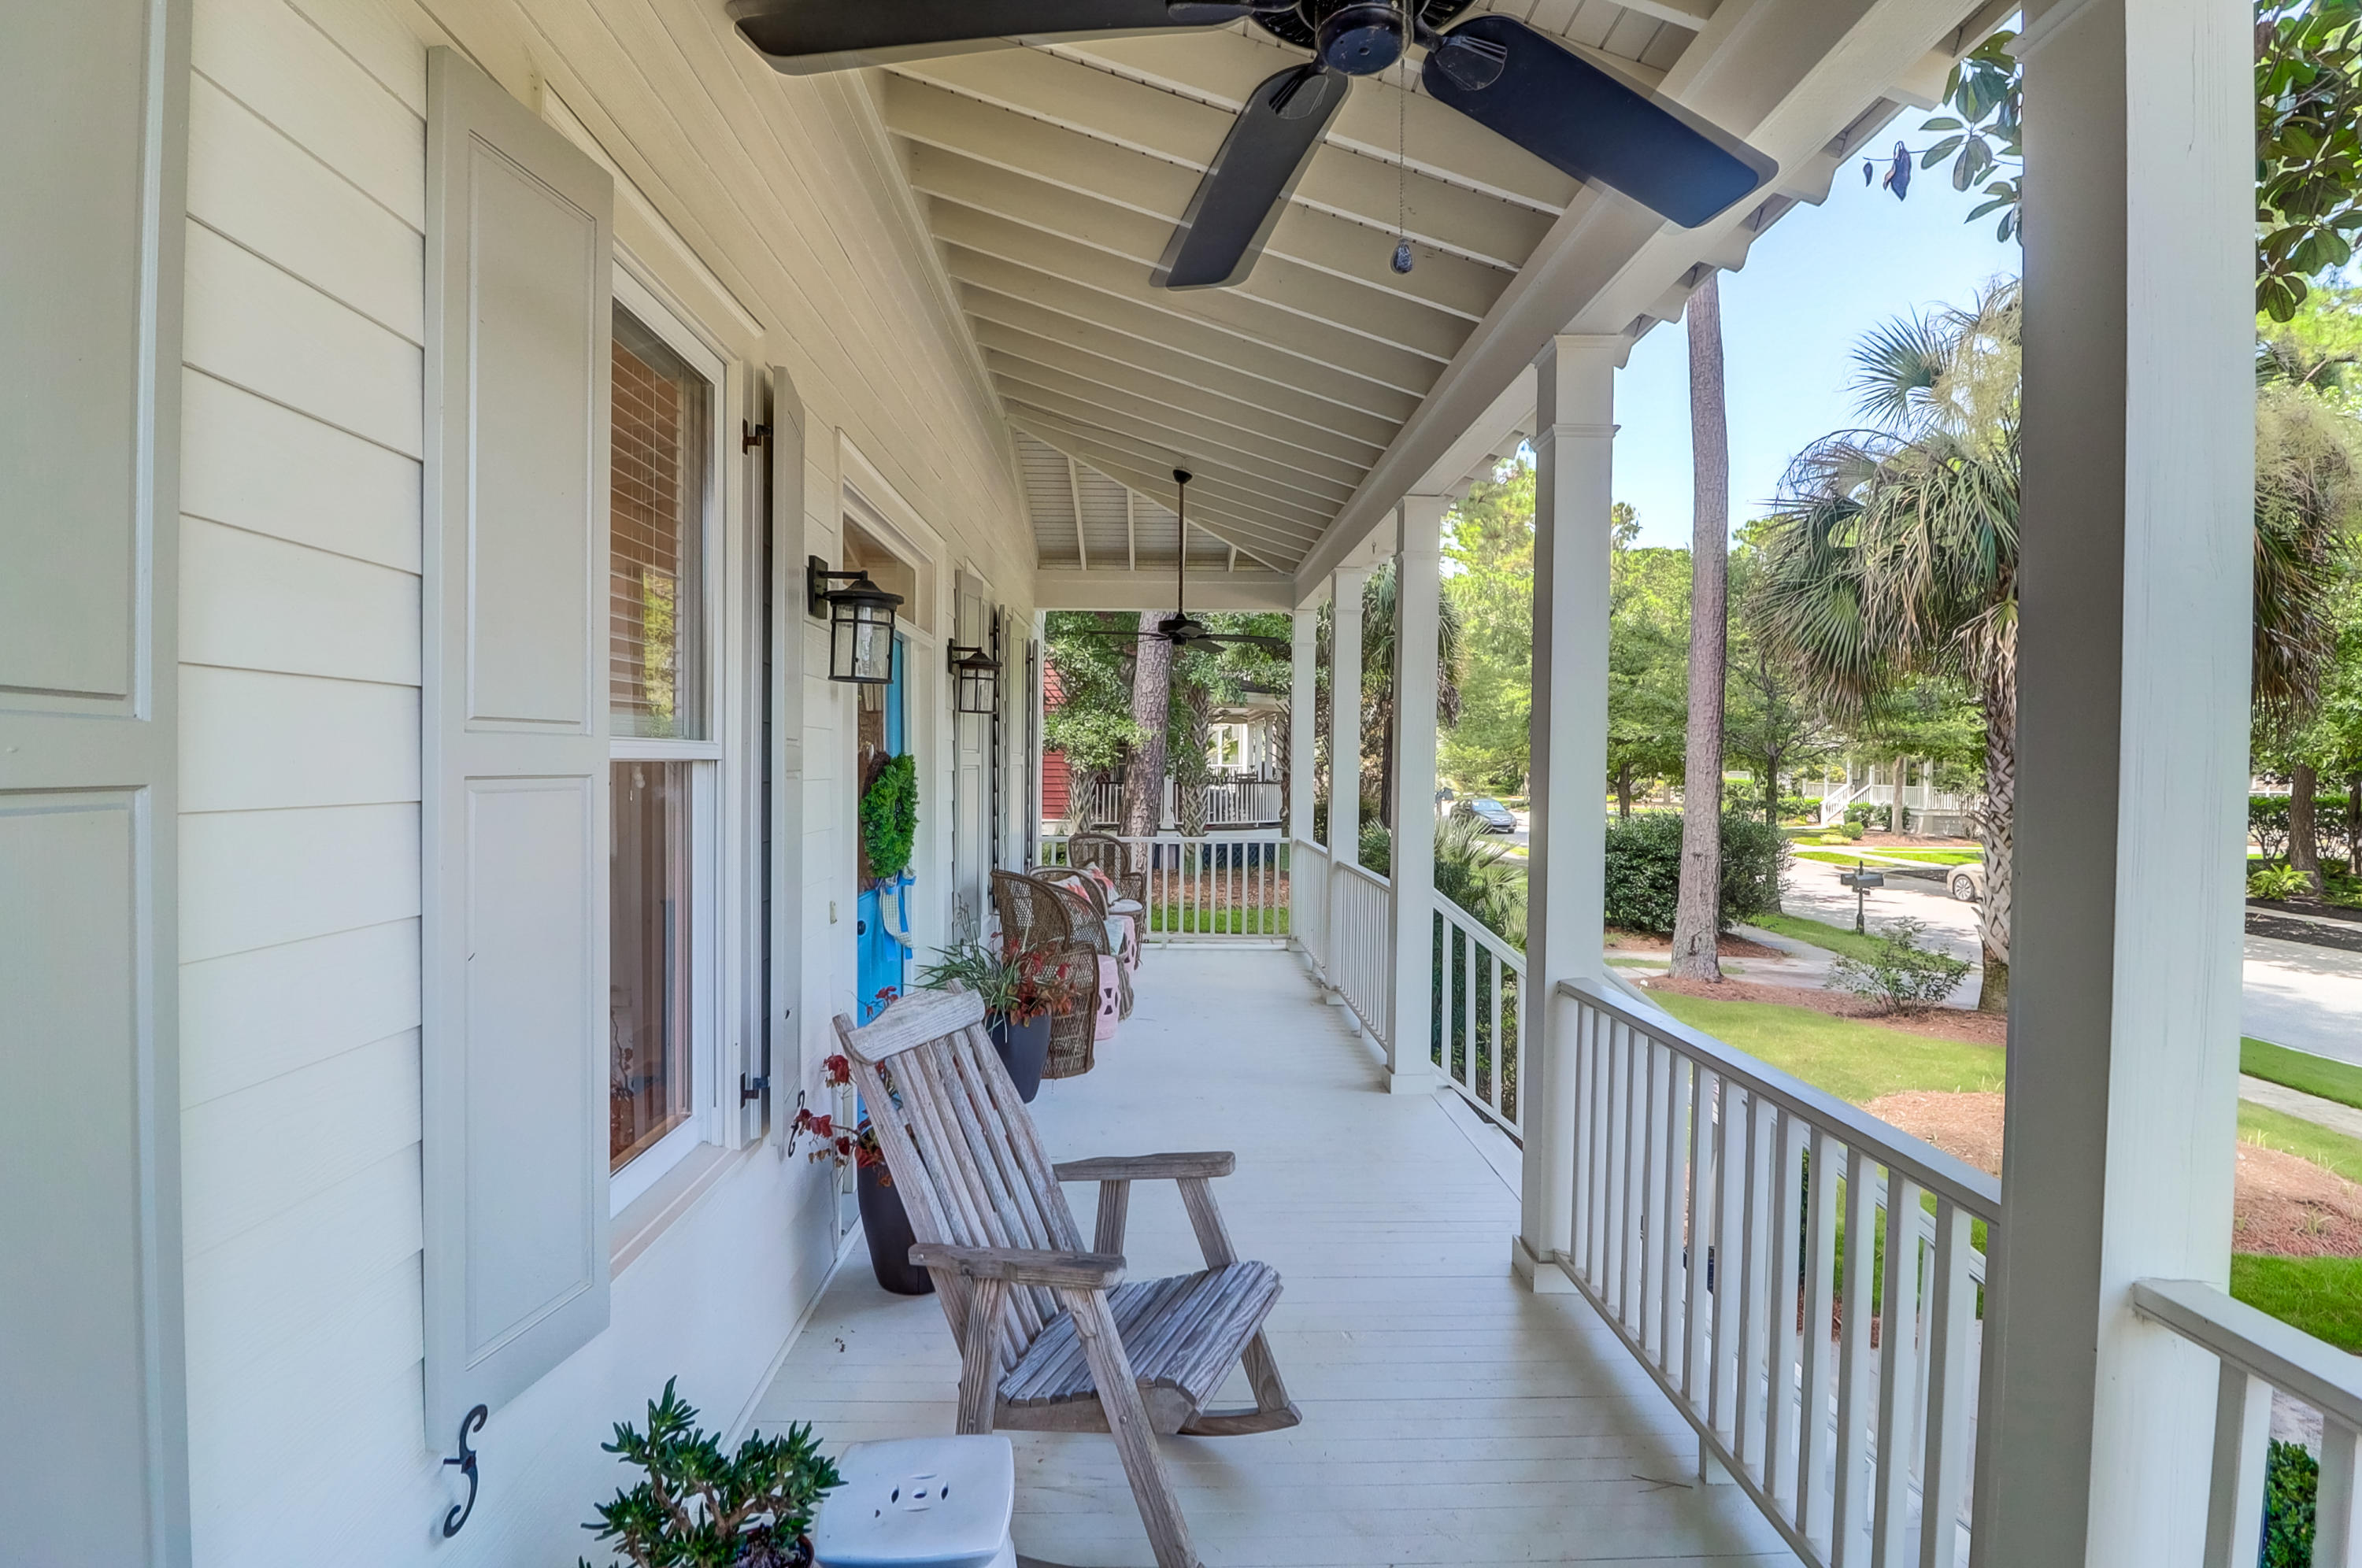 The Villages In St Johns Woods Homes For Sale - 5056 Coral Reef Dr, Johns Island, SC - 6